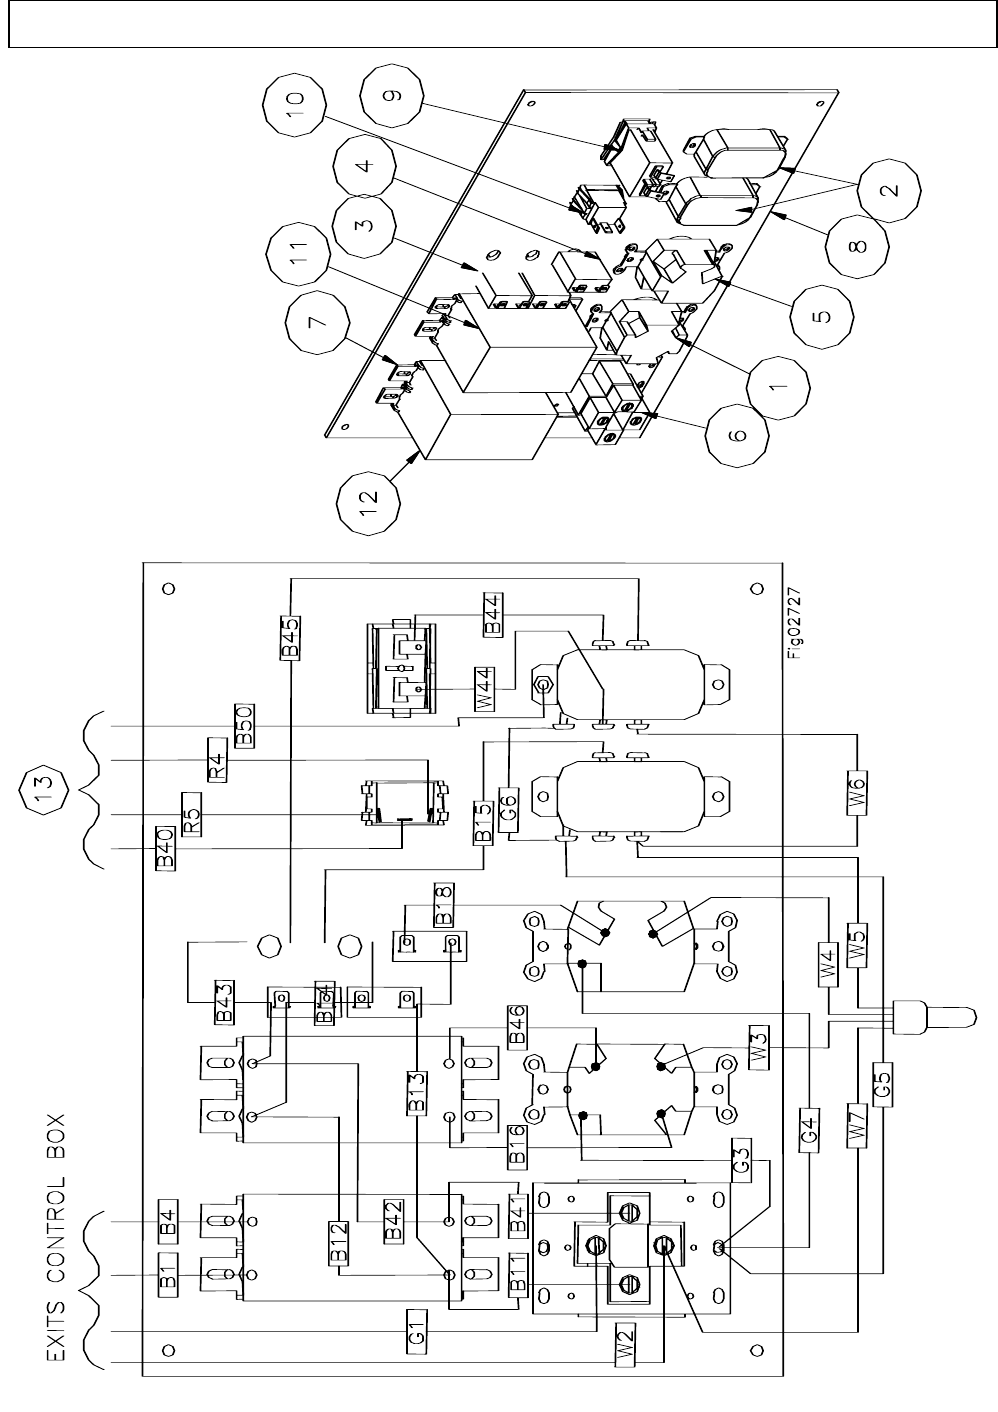 8e52e26d 1020 60c4 ad81 f1826fdf54ba bg2f page 47 of north star portable generator m165939j user guide northstar generator wiring diagram at readyjetset.co